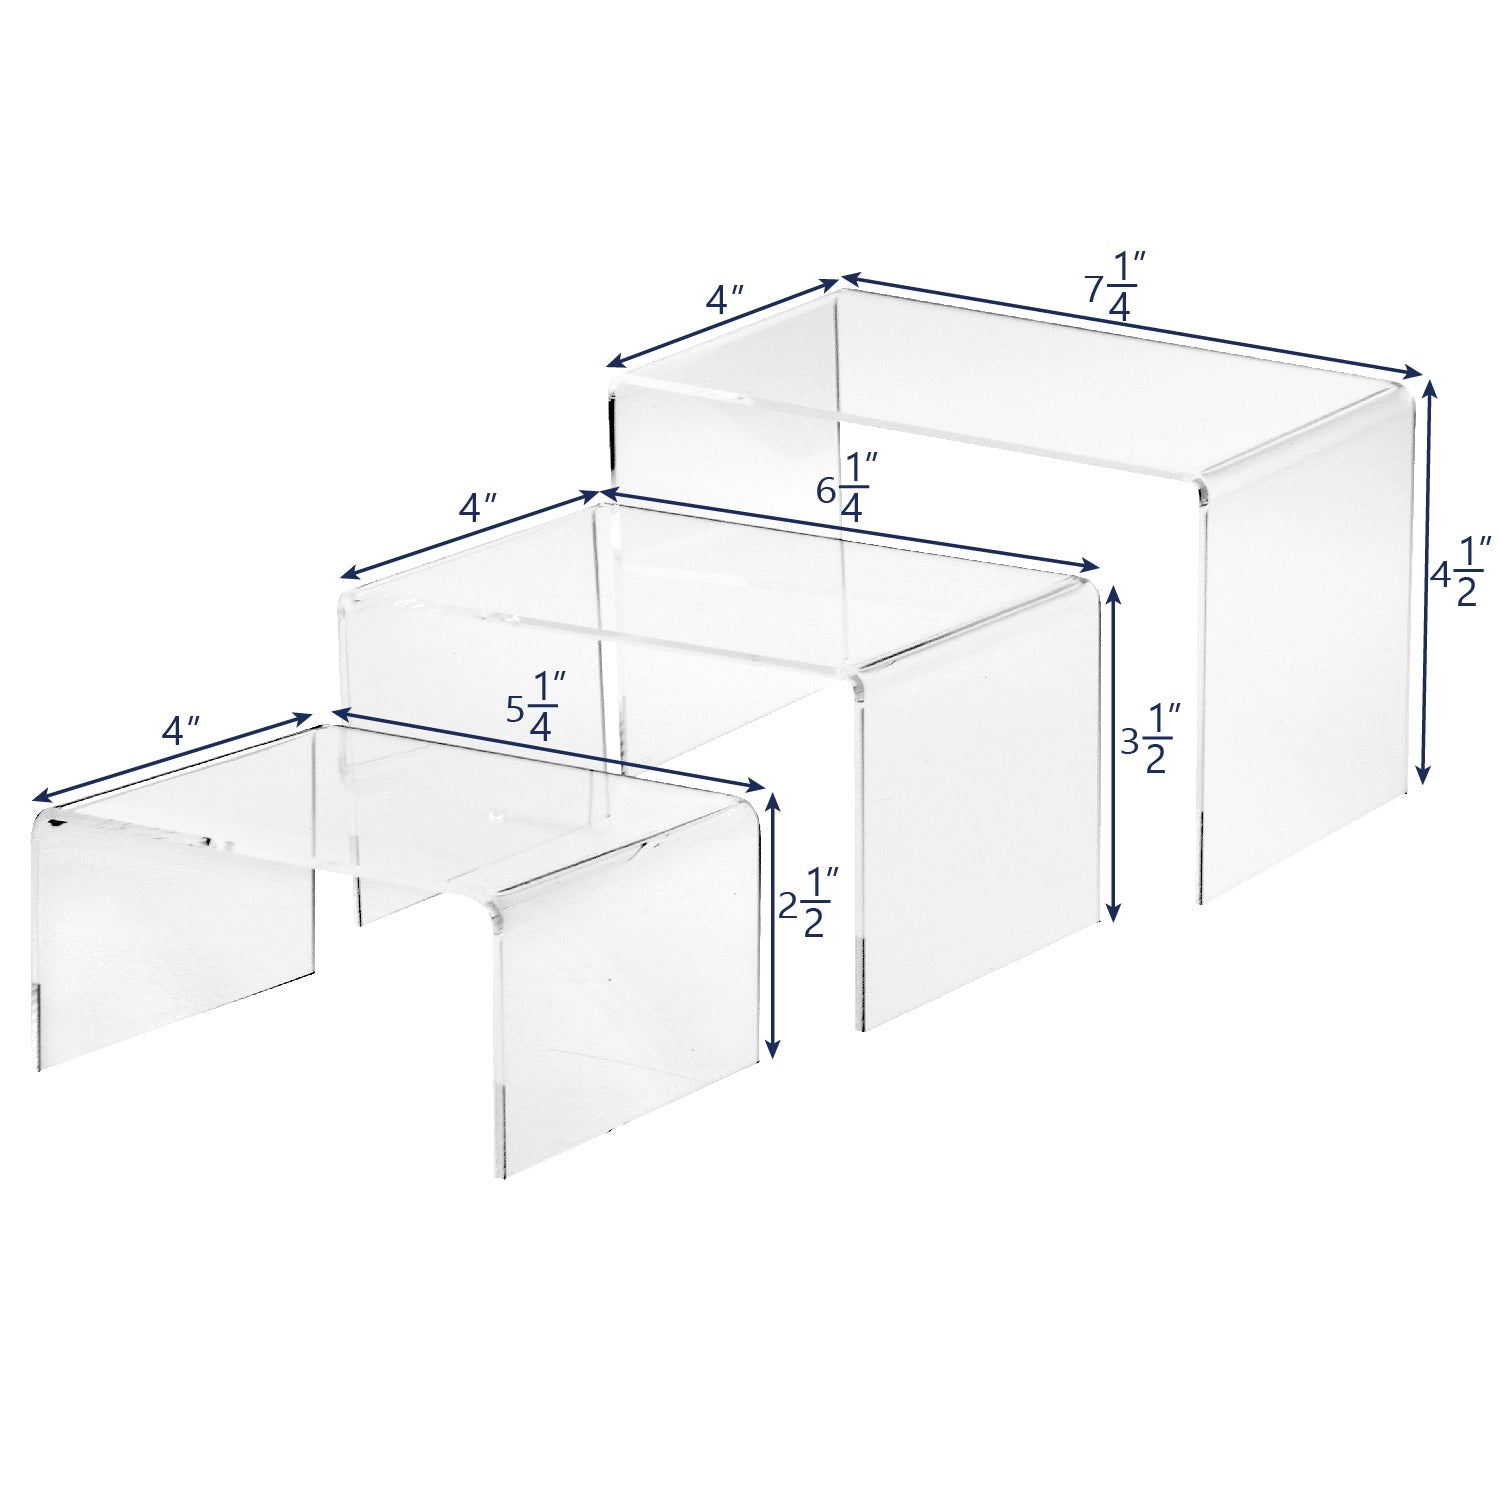 #1102 Acrylic Eyewear U-Shaped Risers